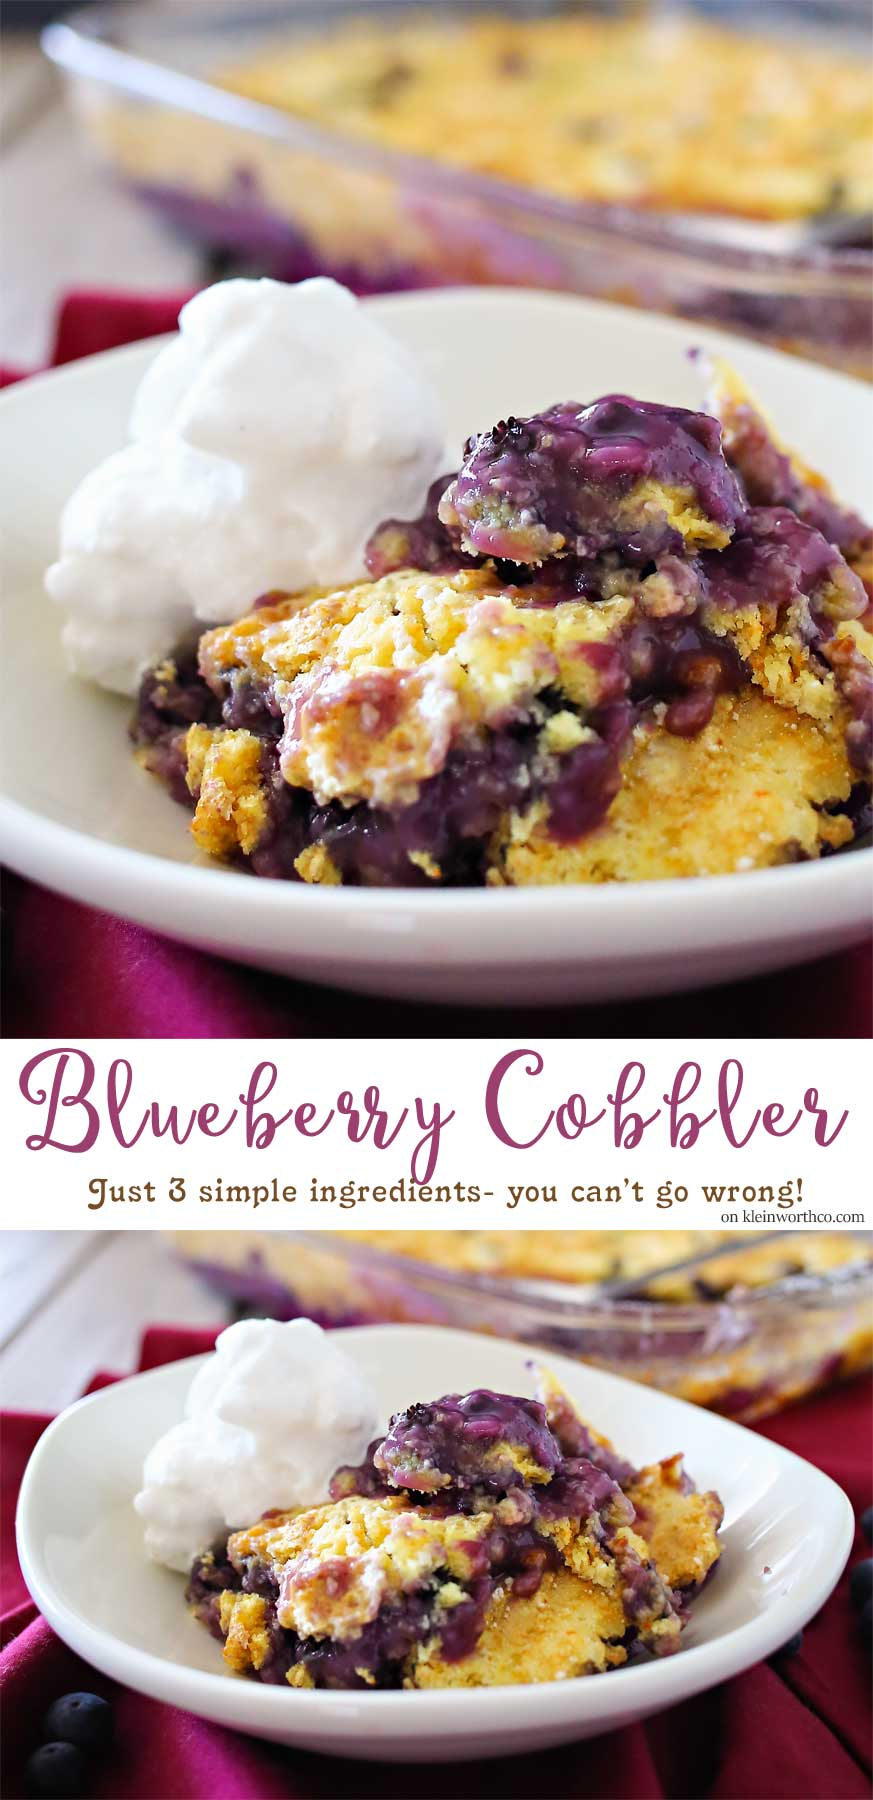 Blueberry Cobbler Is One Of My Favorite Desserts It Certainly Tops The List For